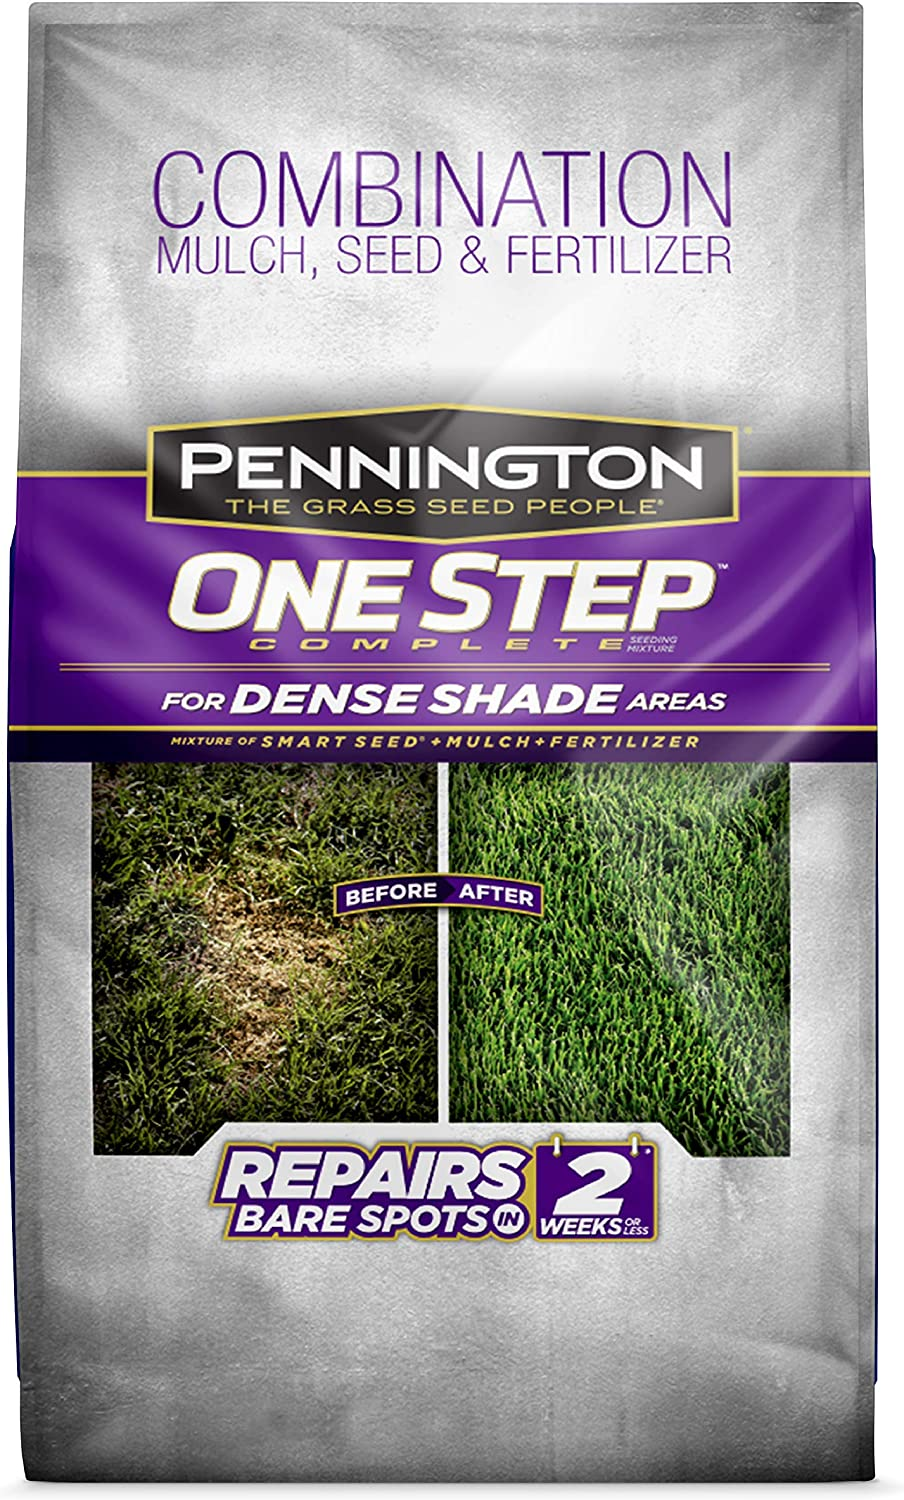 Pennington One Step Complete for Dense Shade Areas - Bare Spot Repair Grass Seed Mix - 8.3 lb